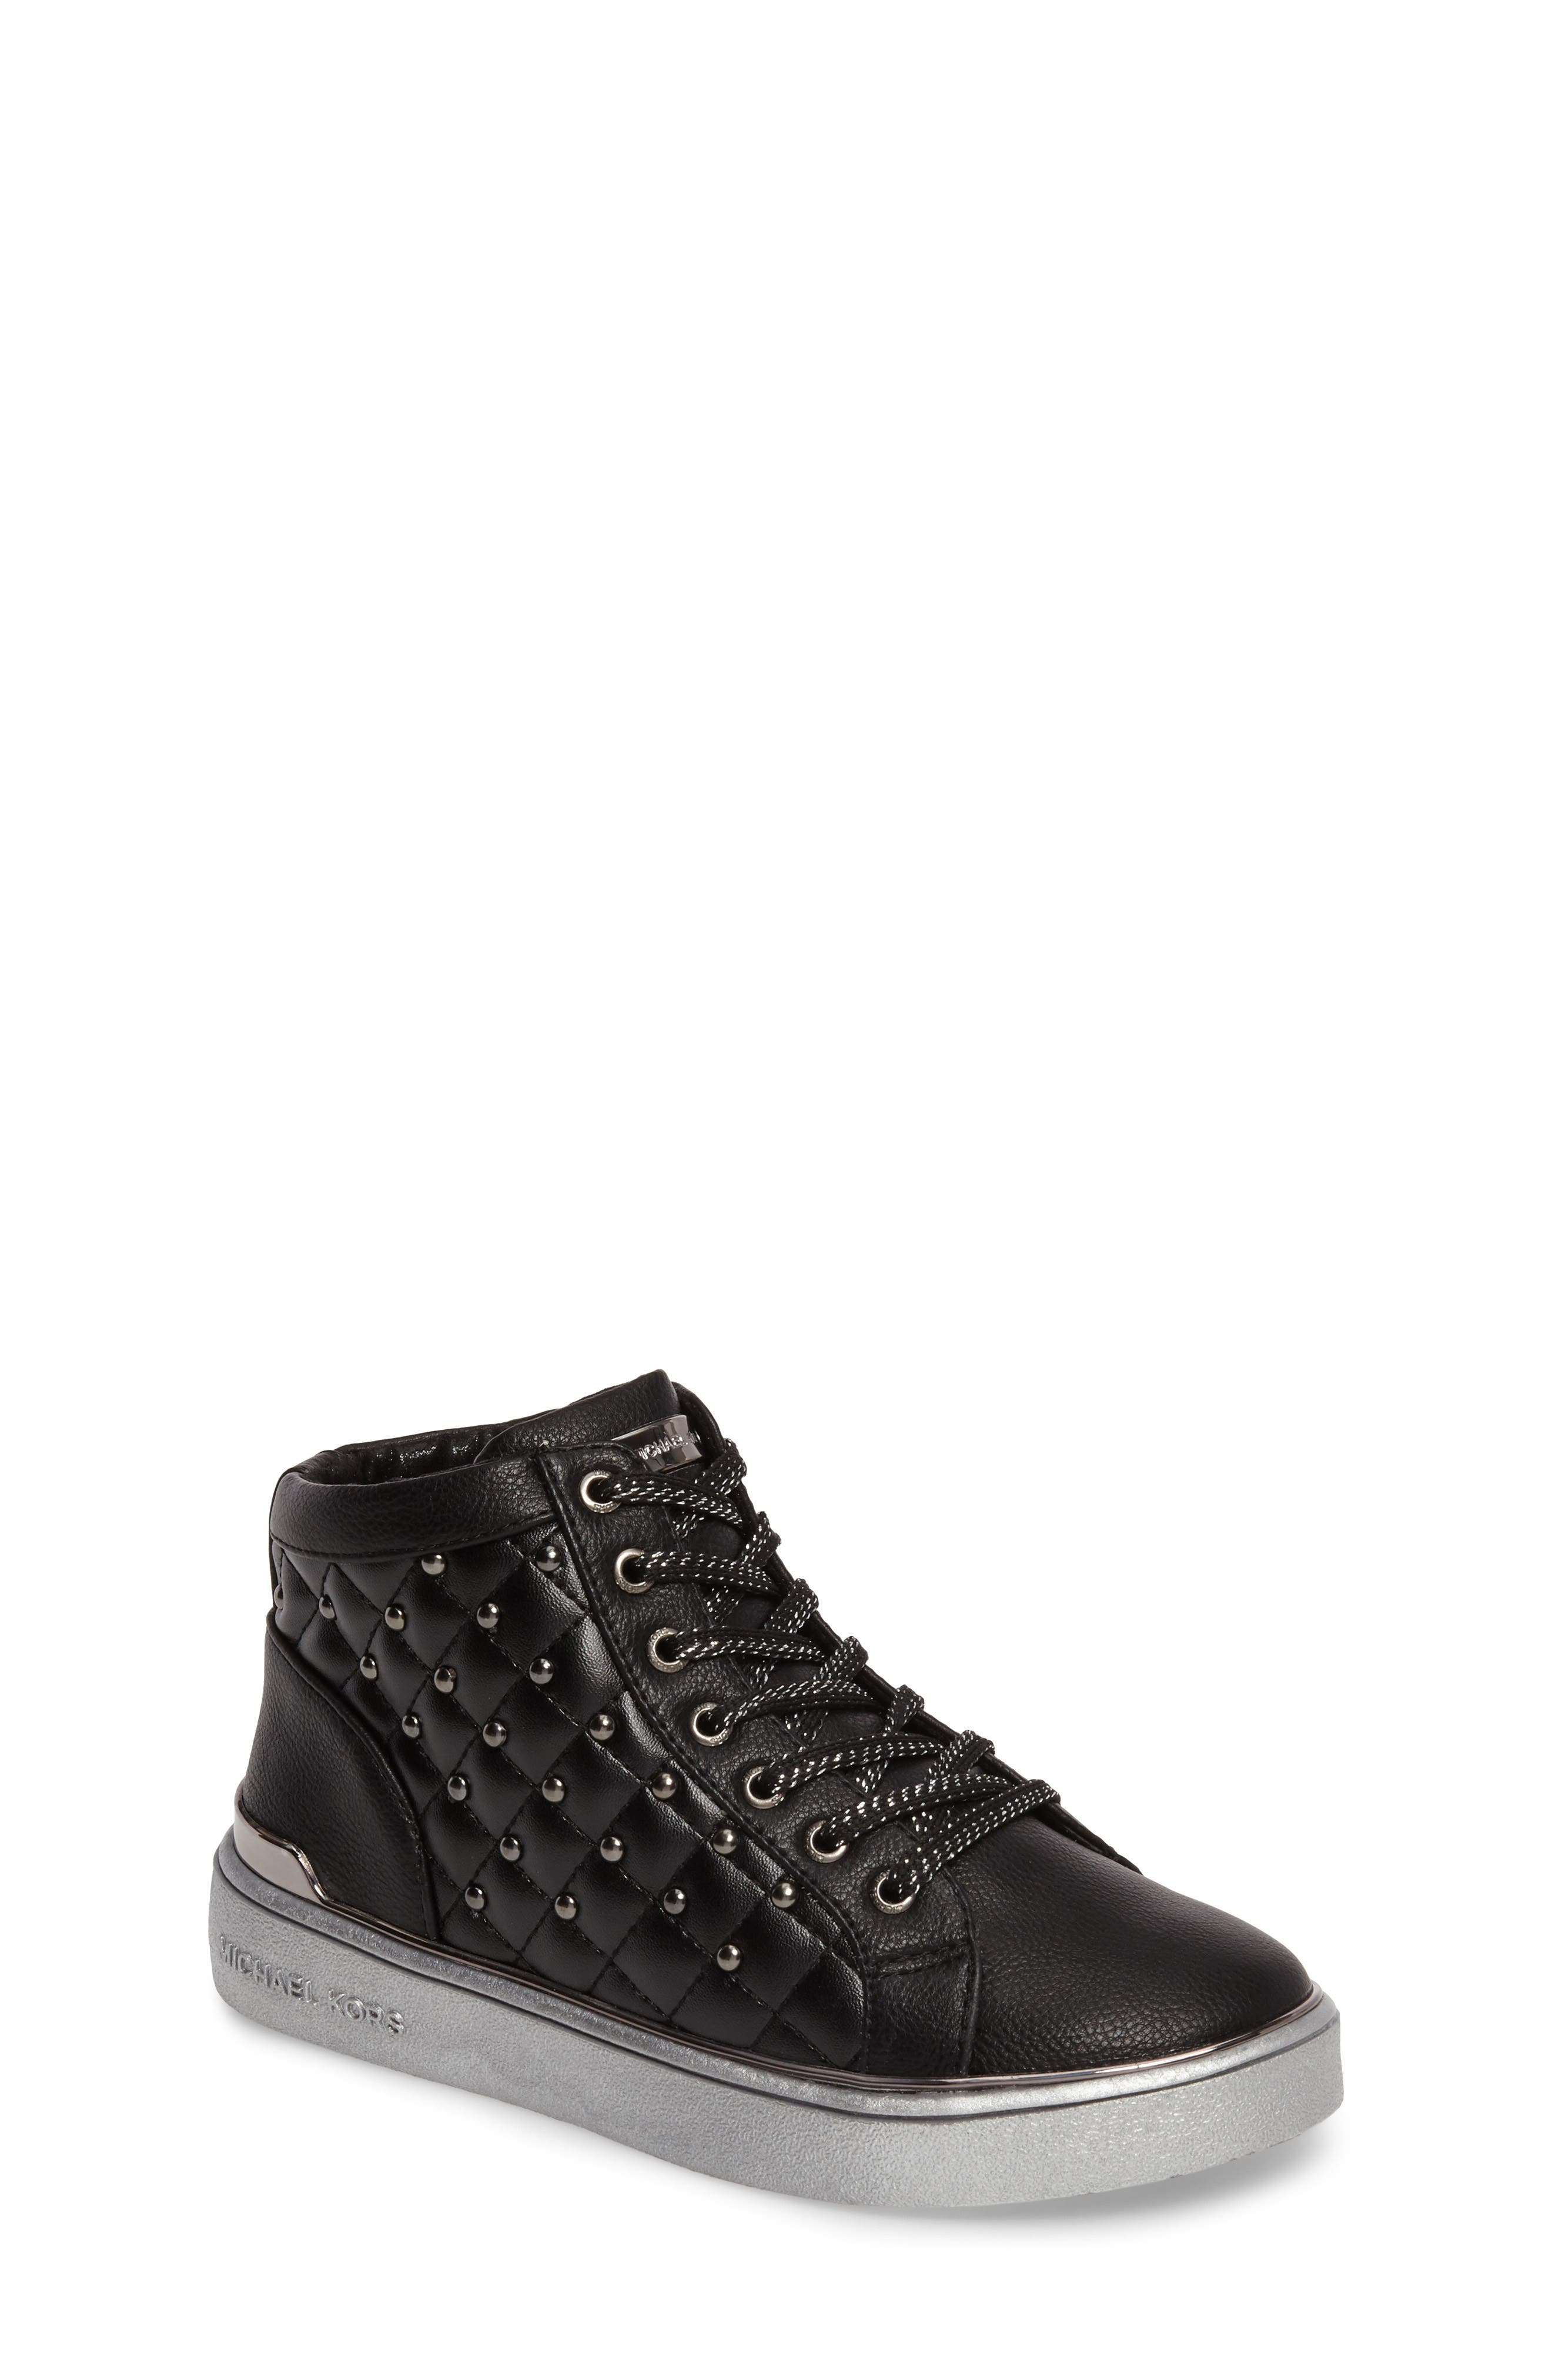 MICHAEL Michael Kors Ivy Rome Sneaker (Toddler, Little Kid & Big Kid)